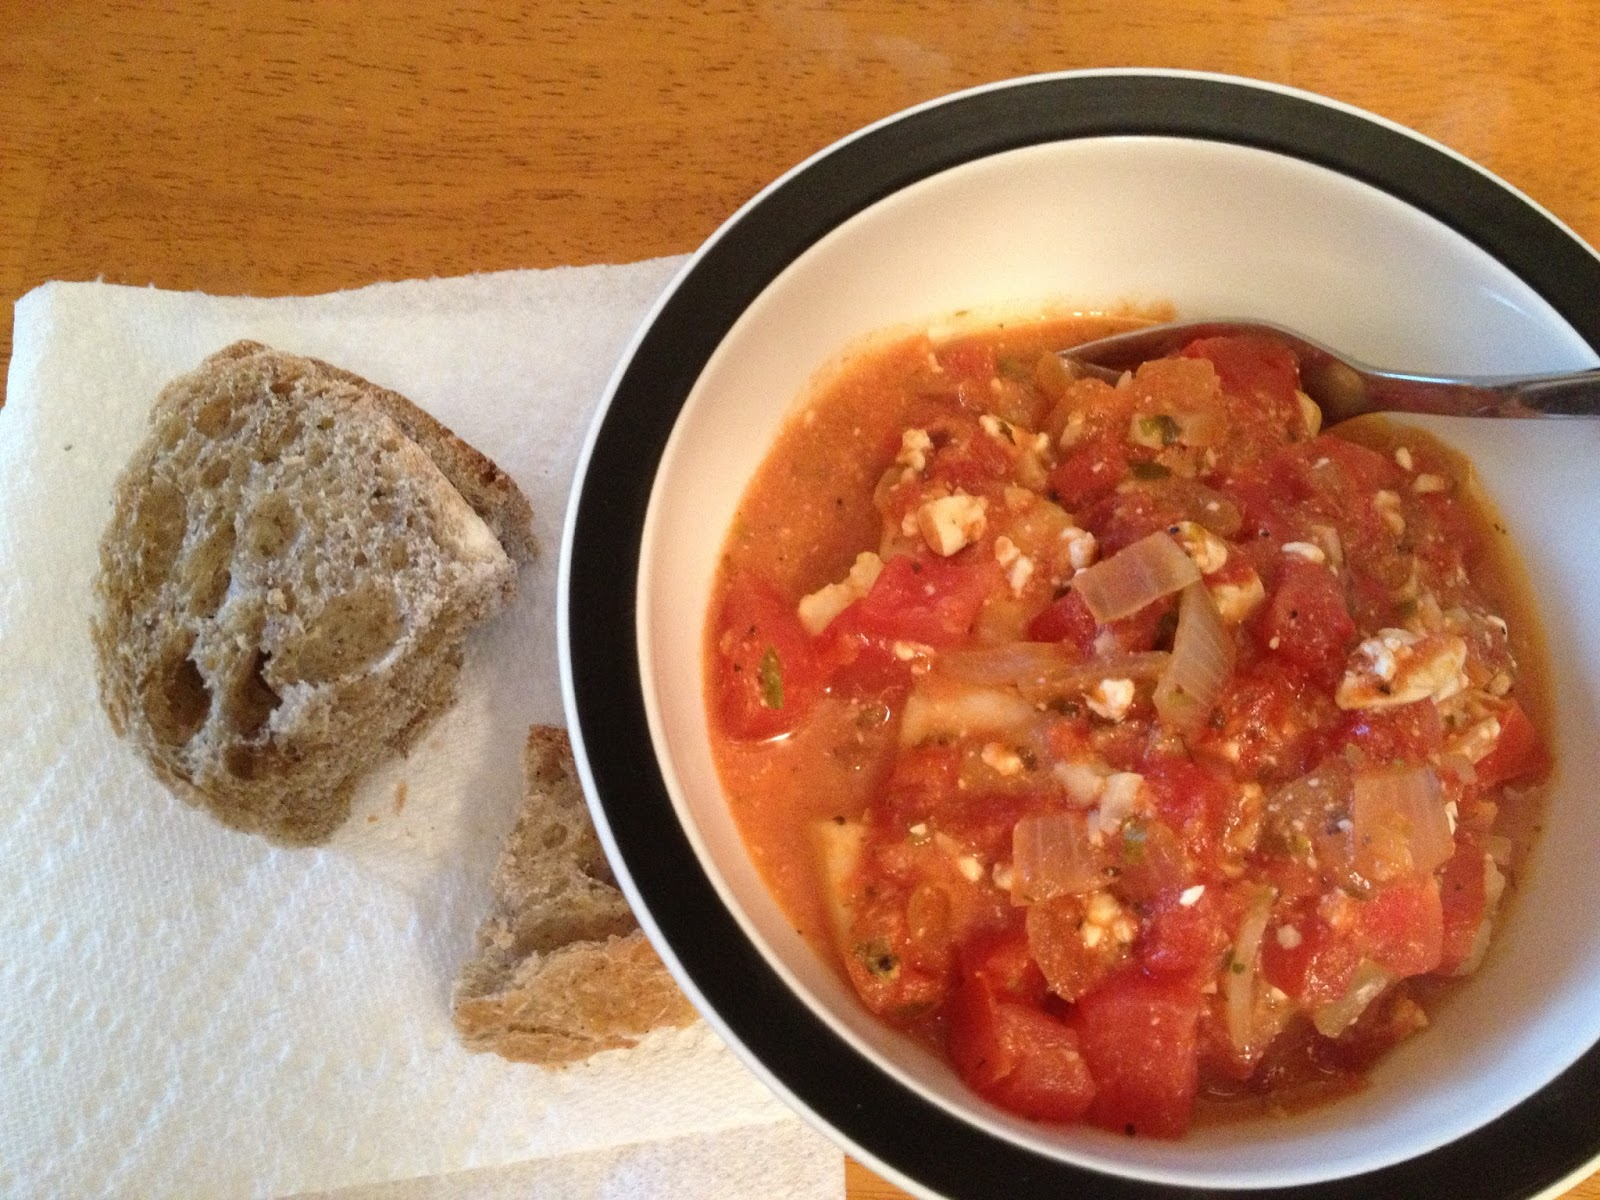 ... Out and Eating In: Recipe - Cod Baked in a Tomato and Feta Sauce